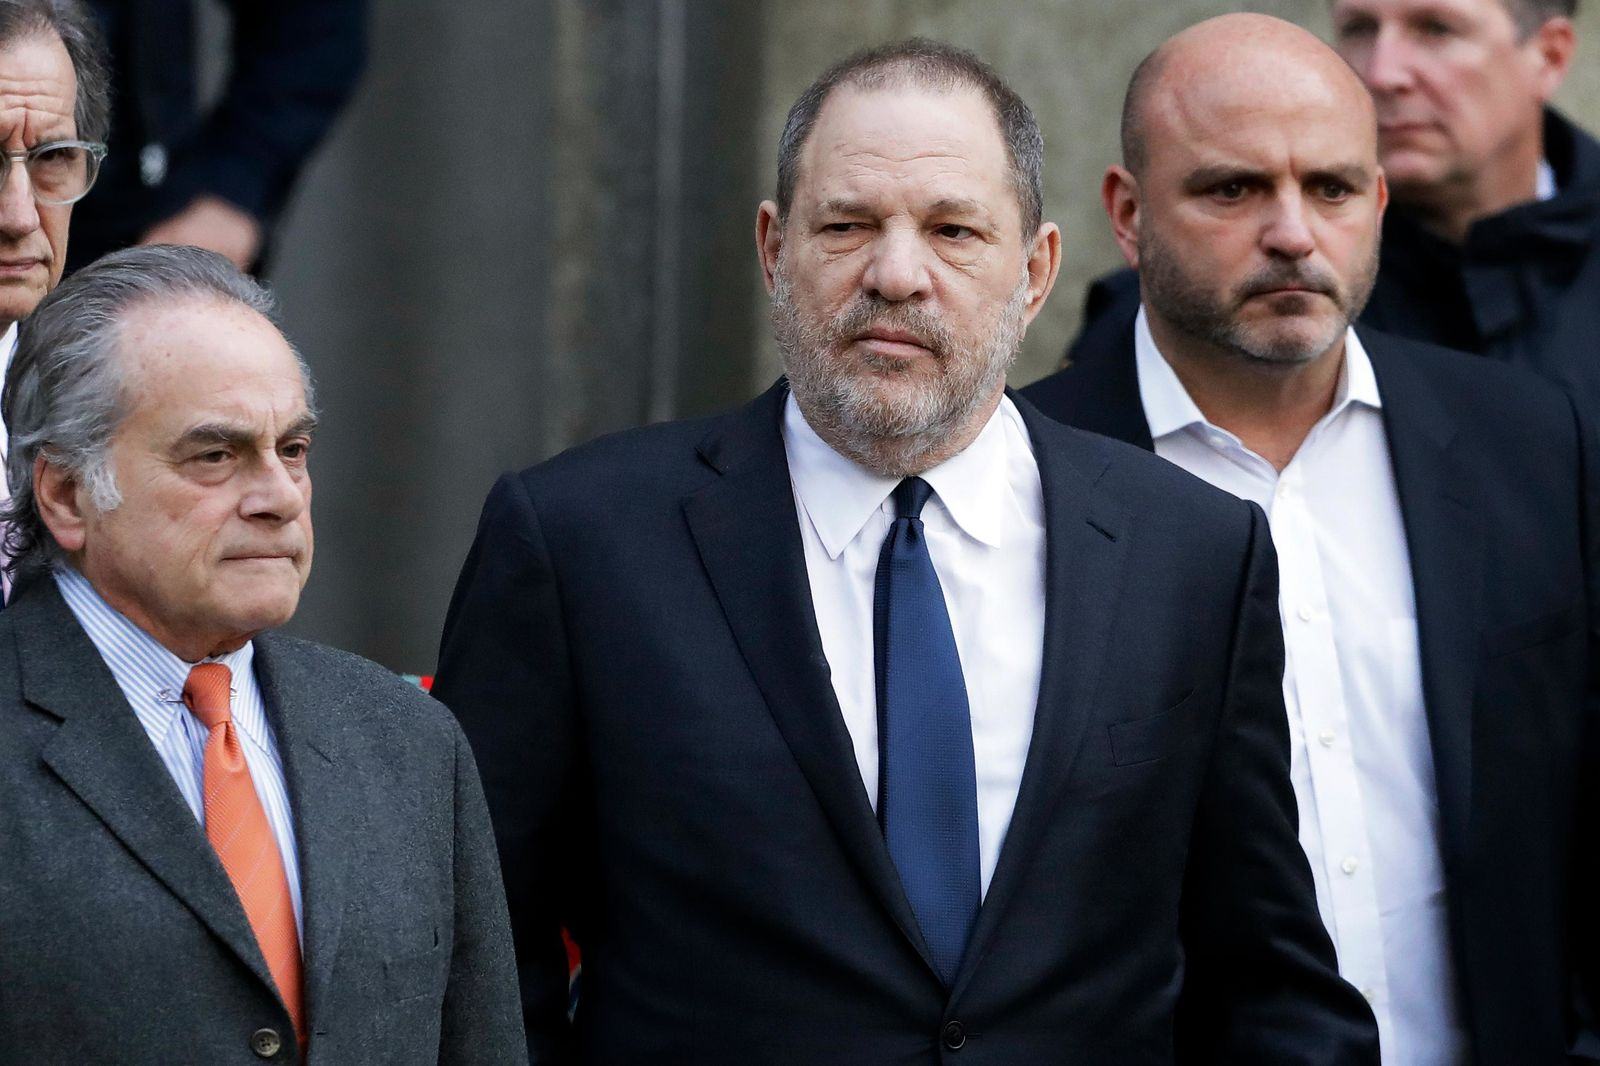 FILE - In this Thursday, Dec. 20, 2018, file photo, Harvey Weinstein, center, leaves New York Supreme Court with his attorney Benjamin Brafman, left, in New York. (AP Photo/Mark Lennihan, File)